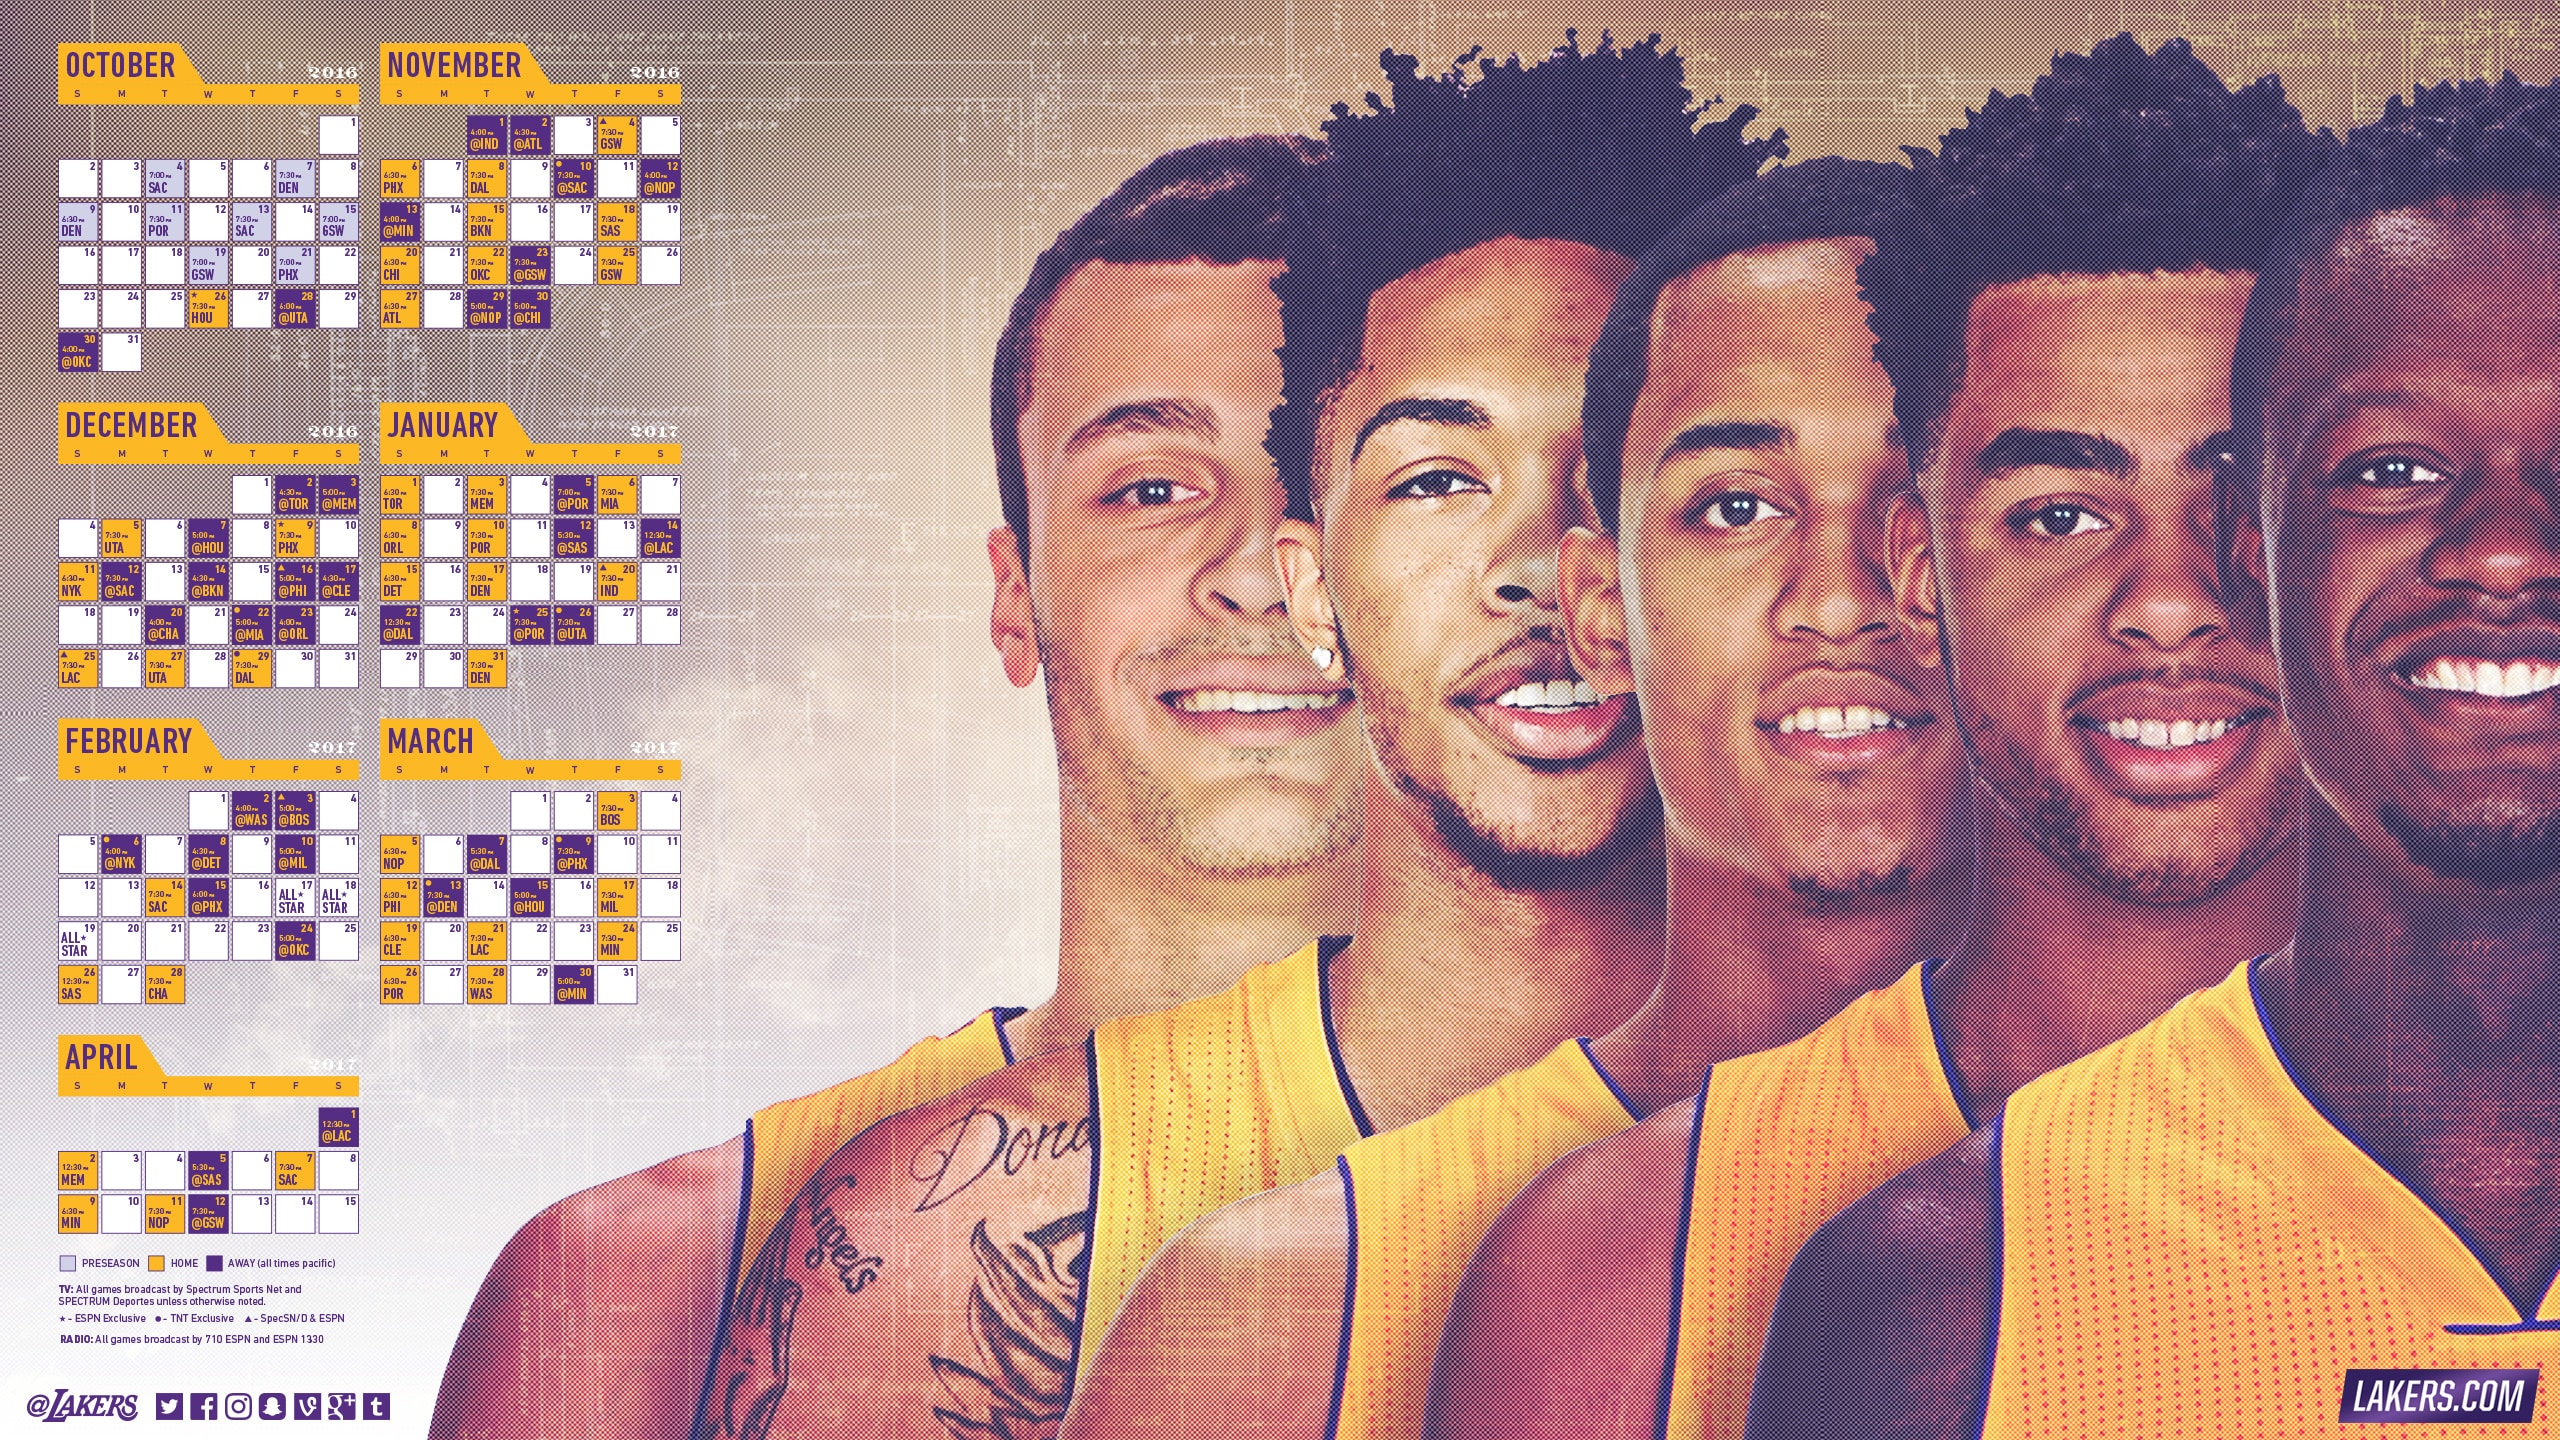 Lakers 2016-17 Schedule